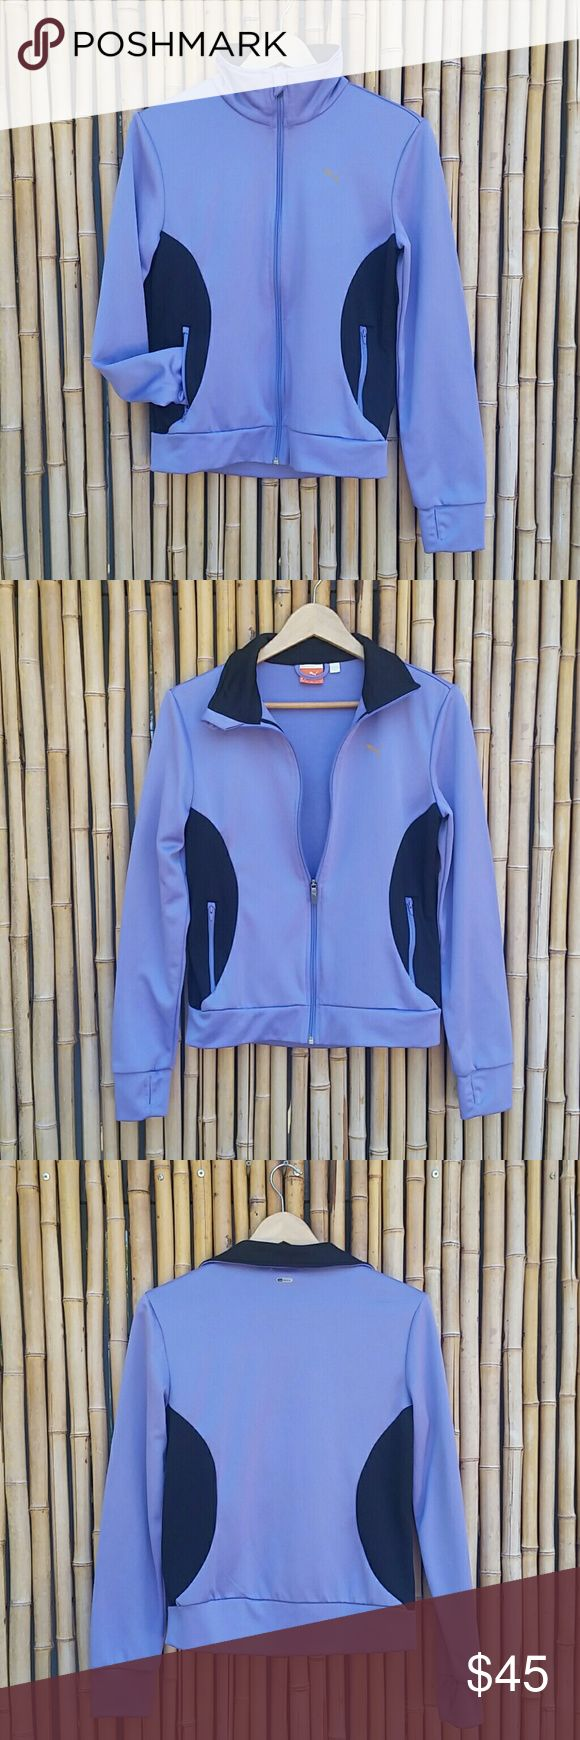 """PUMA Sport Jacket size Medium PUMA Sport Jacket  Periwinkle & Black  Full zipper to Turtleneck  2 side seam pockets  2 inside open pockets Cuffs have hole for thumbs  Label size Medium Chest 19"""" Length 24"""" Sleeves 25"""" Hemline 17""""  💲Bundle & Save!💲😀 🚫No Trades/No Holds 🙄😘  🔘Use OFFER button to negotiate👍🤑 ❔Please Ask ?'s BEFORE you Buy🤔😃 💕Thank you for shopping my closet!💕 Puma Jackets & Coats"""